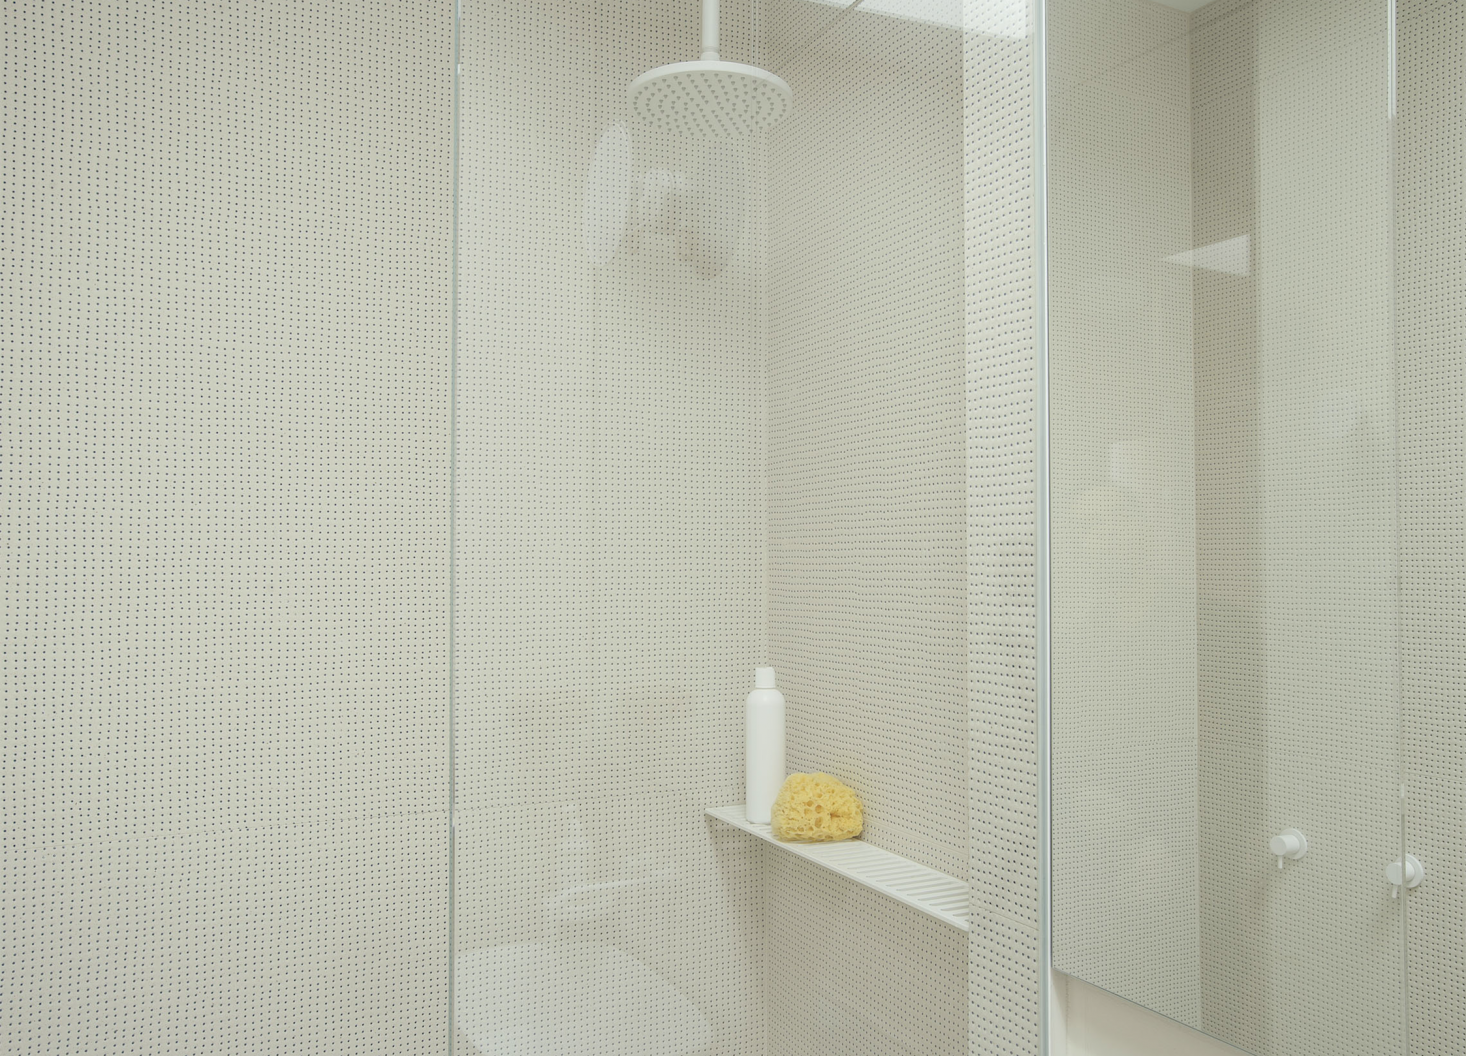 Wall tiles with a pin-size blue dot give the bathroom shower a perforated look. Photograph byMatthew Williamsfor Remodelista; styling byAlexa Hotz.